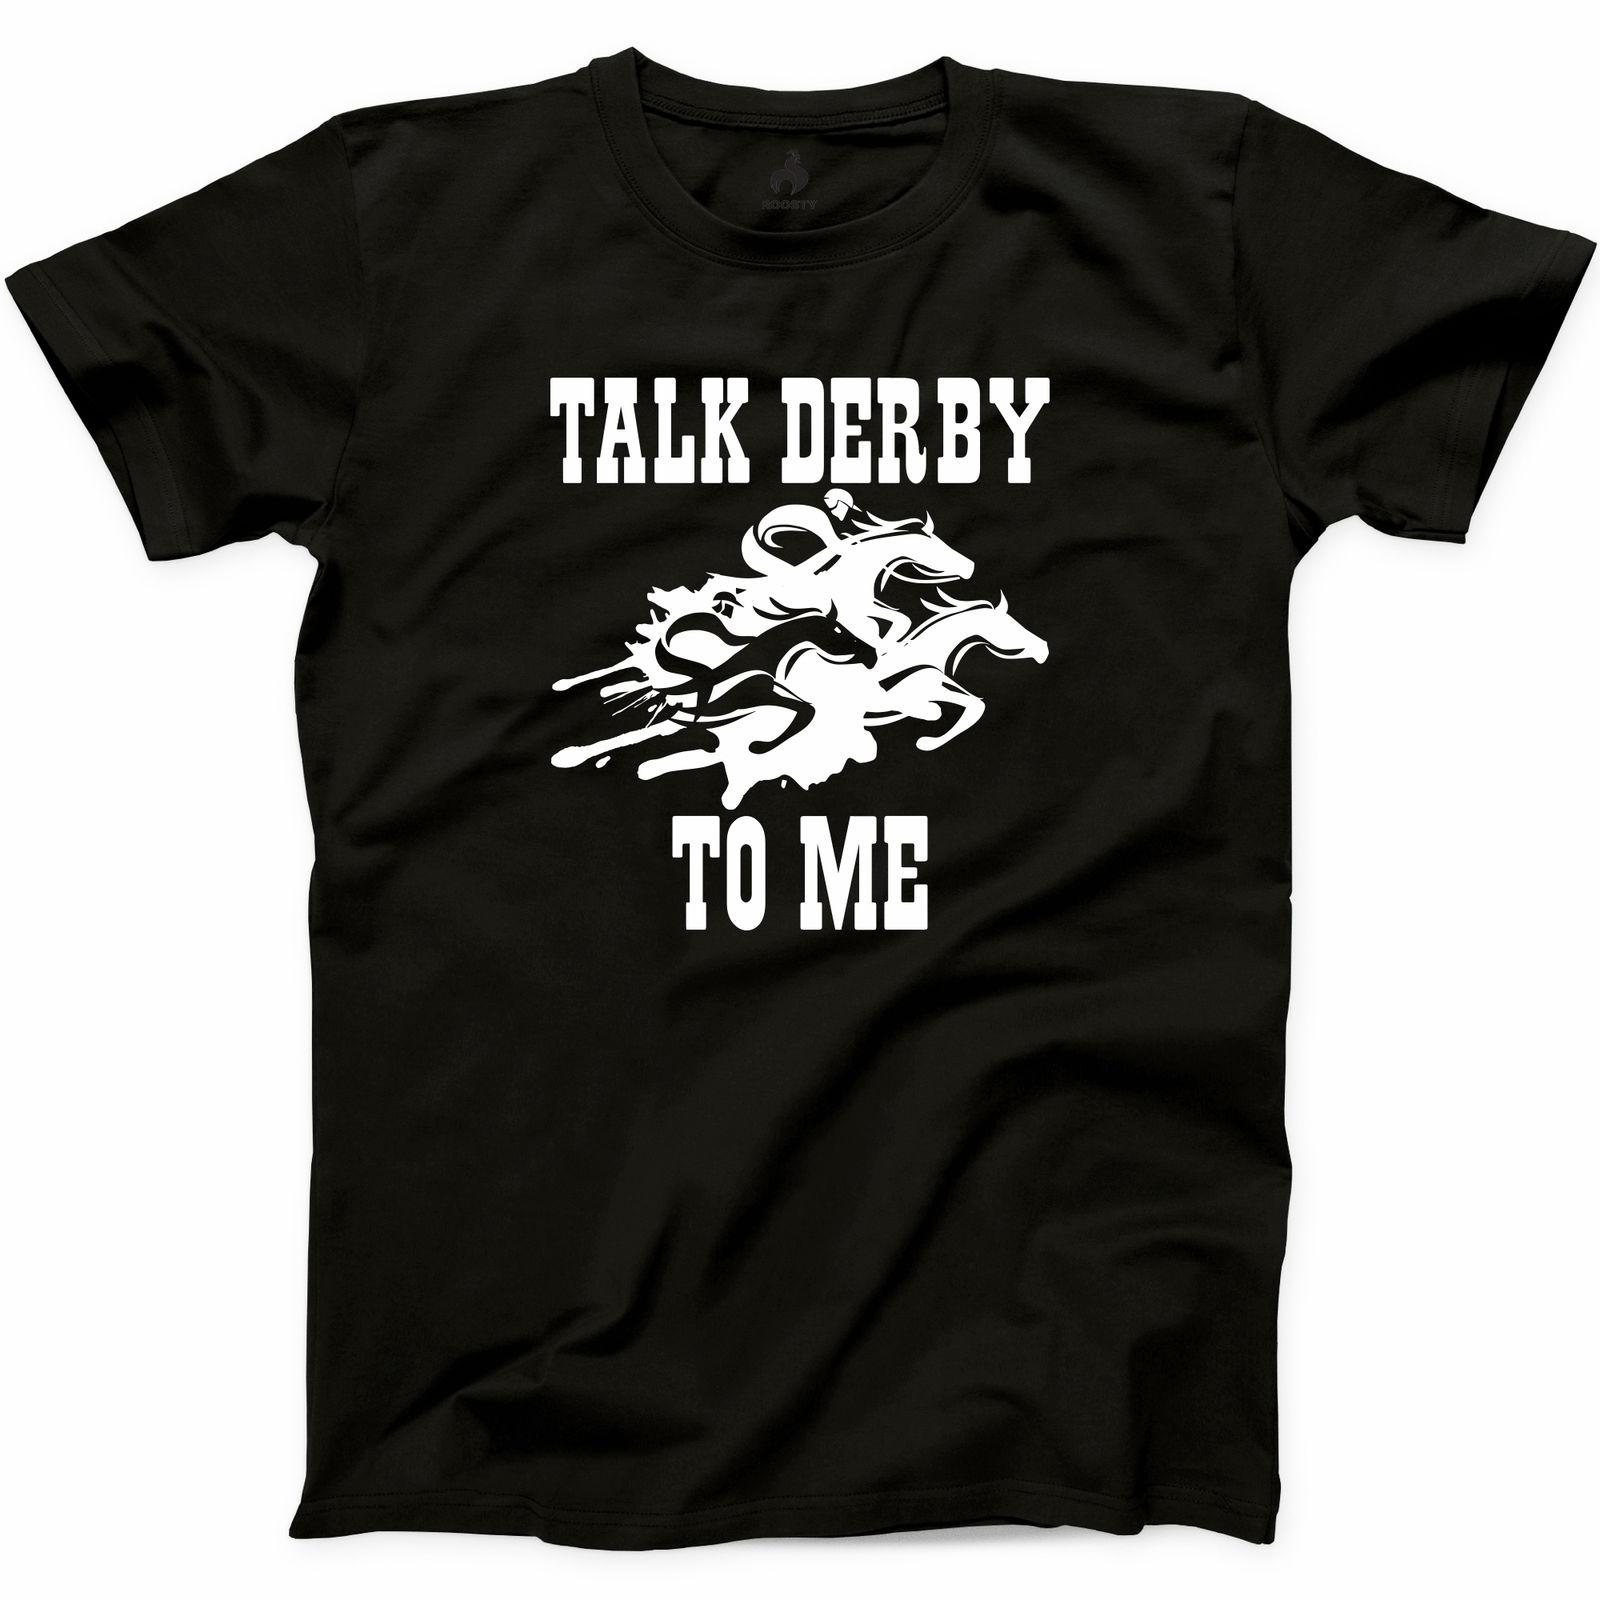 51b8e251c Talk Derby To Me T Shirt Horse Race Funny Kentucky Derby Graphic Tee S 3XL  Funny Unisex Tee Canada 2019 From Tshirt_press, CAD $13.78   DHgate Canada